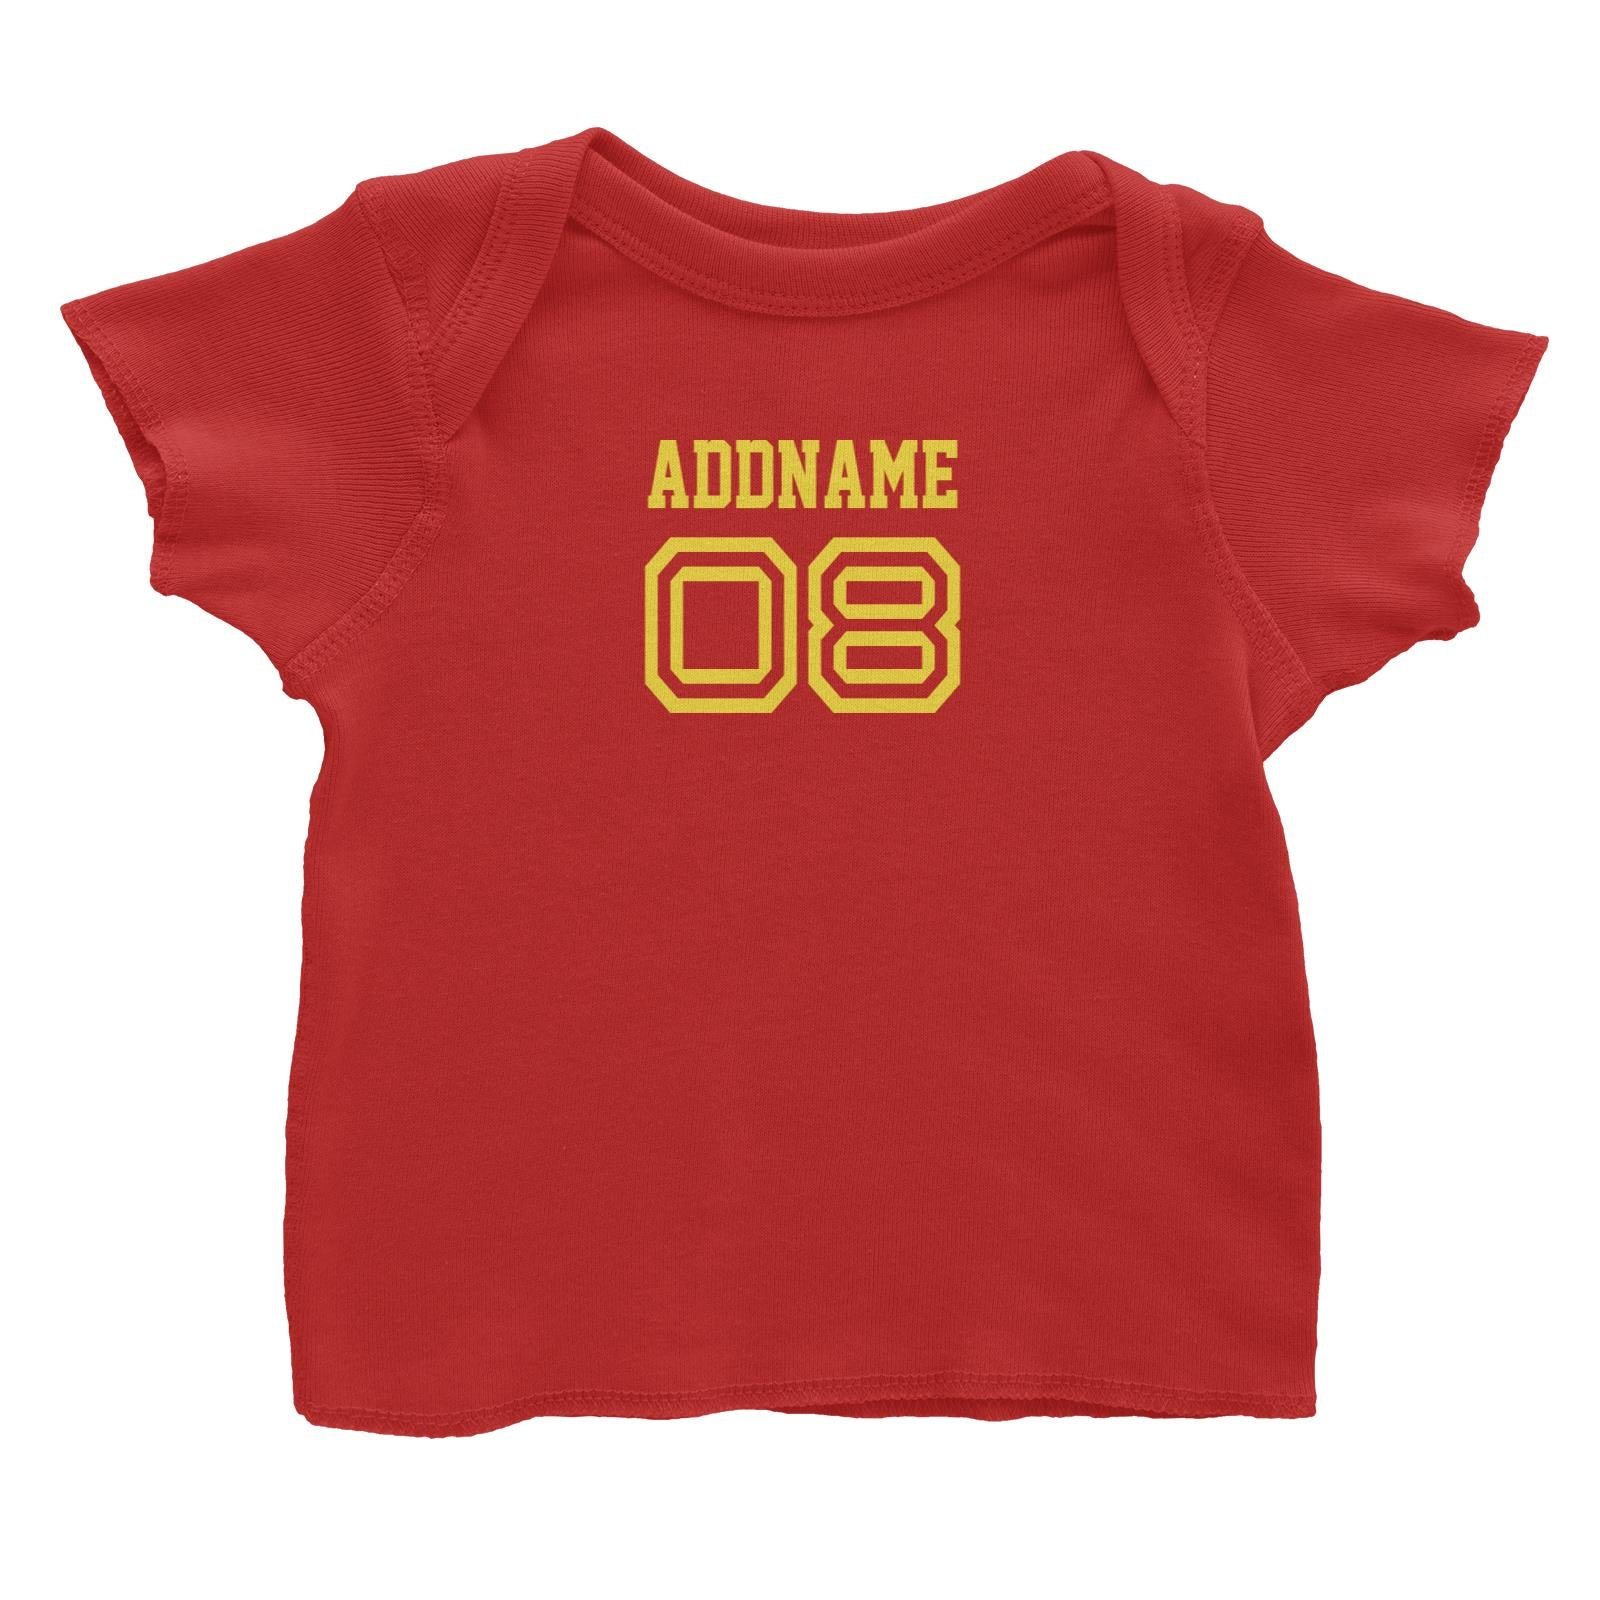 Name Number Family Addname Baby T-Shirt